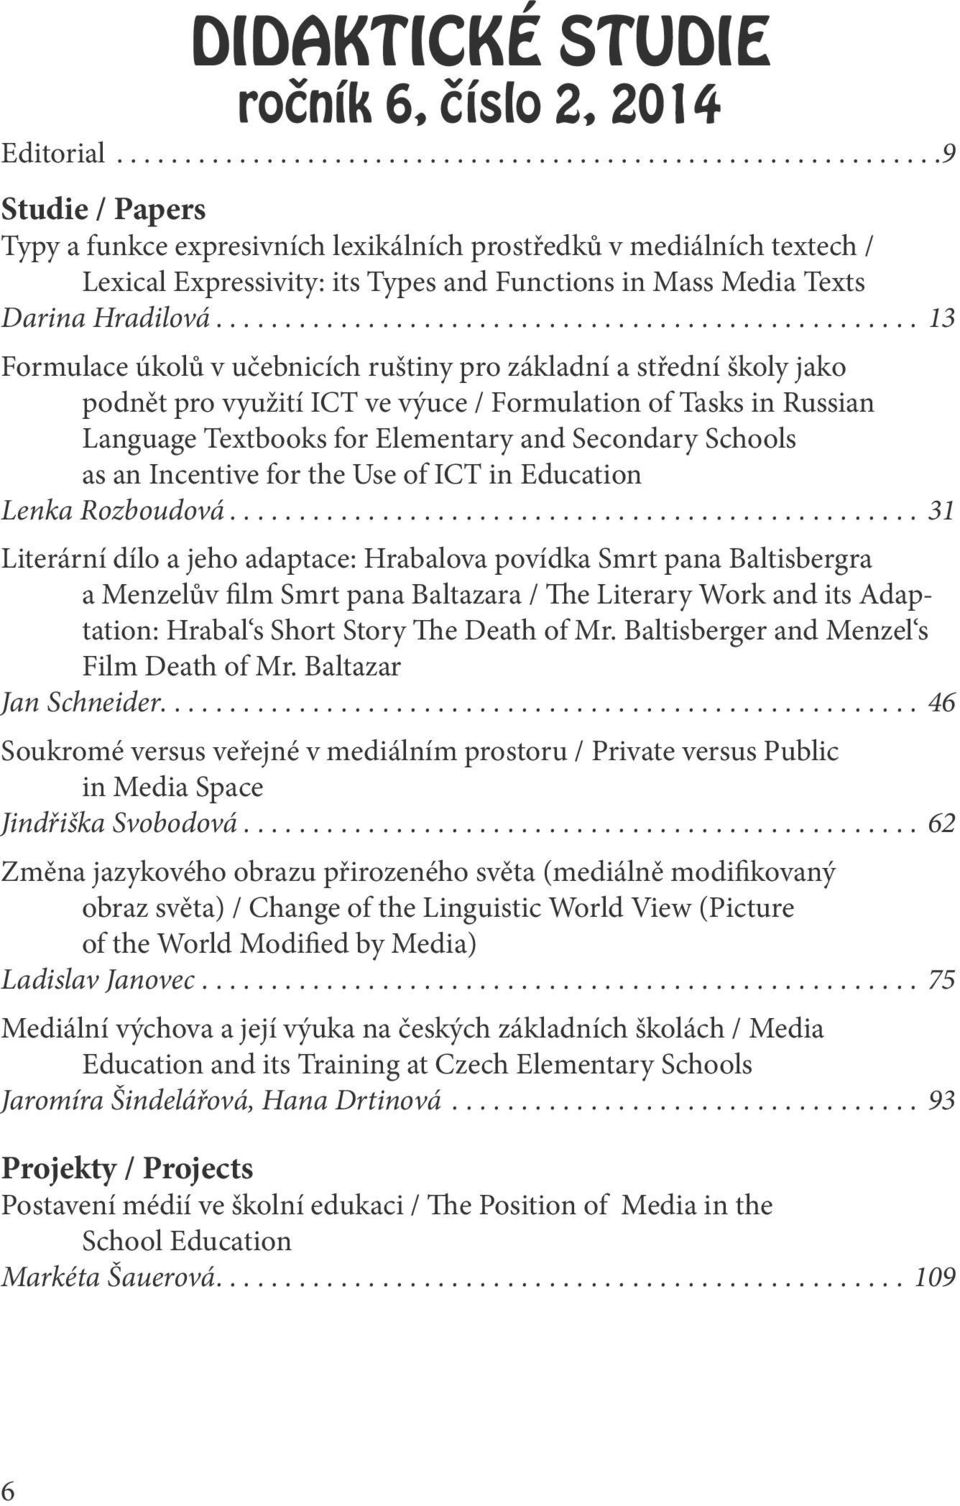 ..13 Formulace úkolů v učebnicích ruštiny pro základní a střední školy jako podnět pro využití ICT ve výuce / Formulation of Tasks in Russian Language Textbooks for Elementary and Secondary Schools